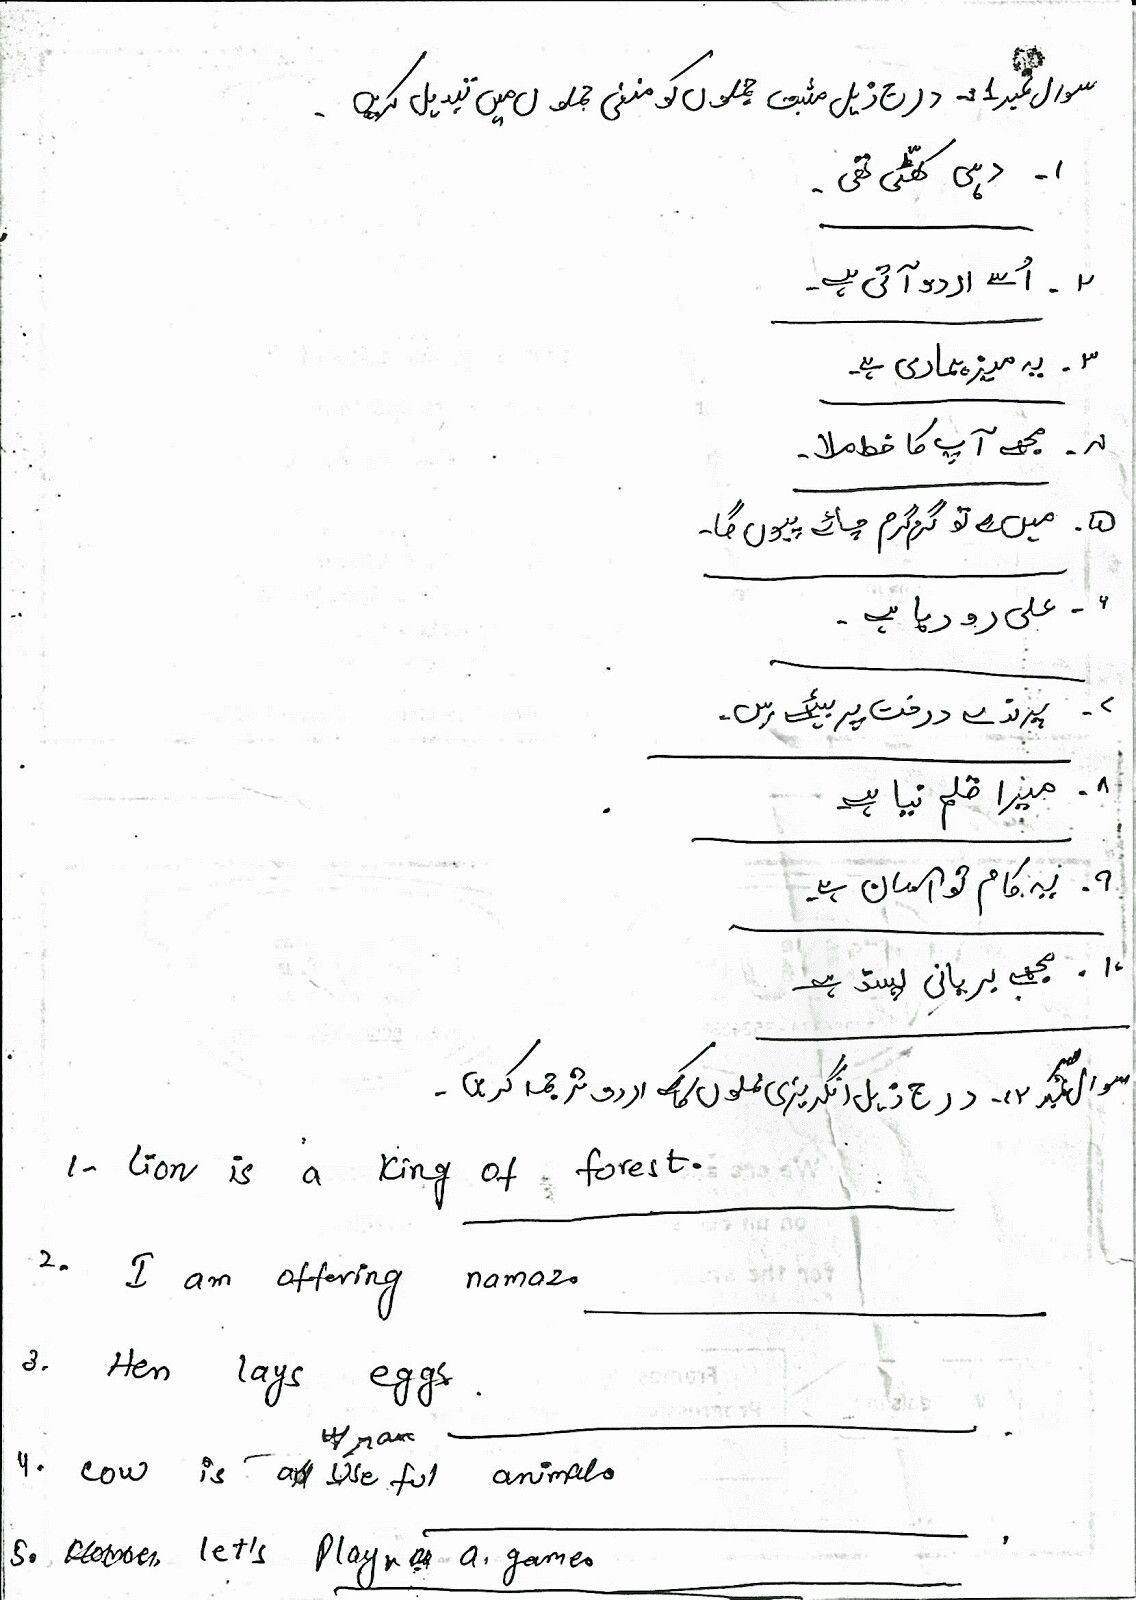 medium resolution of Pin by anam jumlana on Urdu worksheets   Reading comprehension worksheets